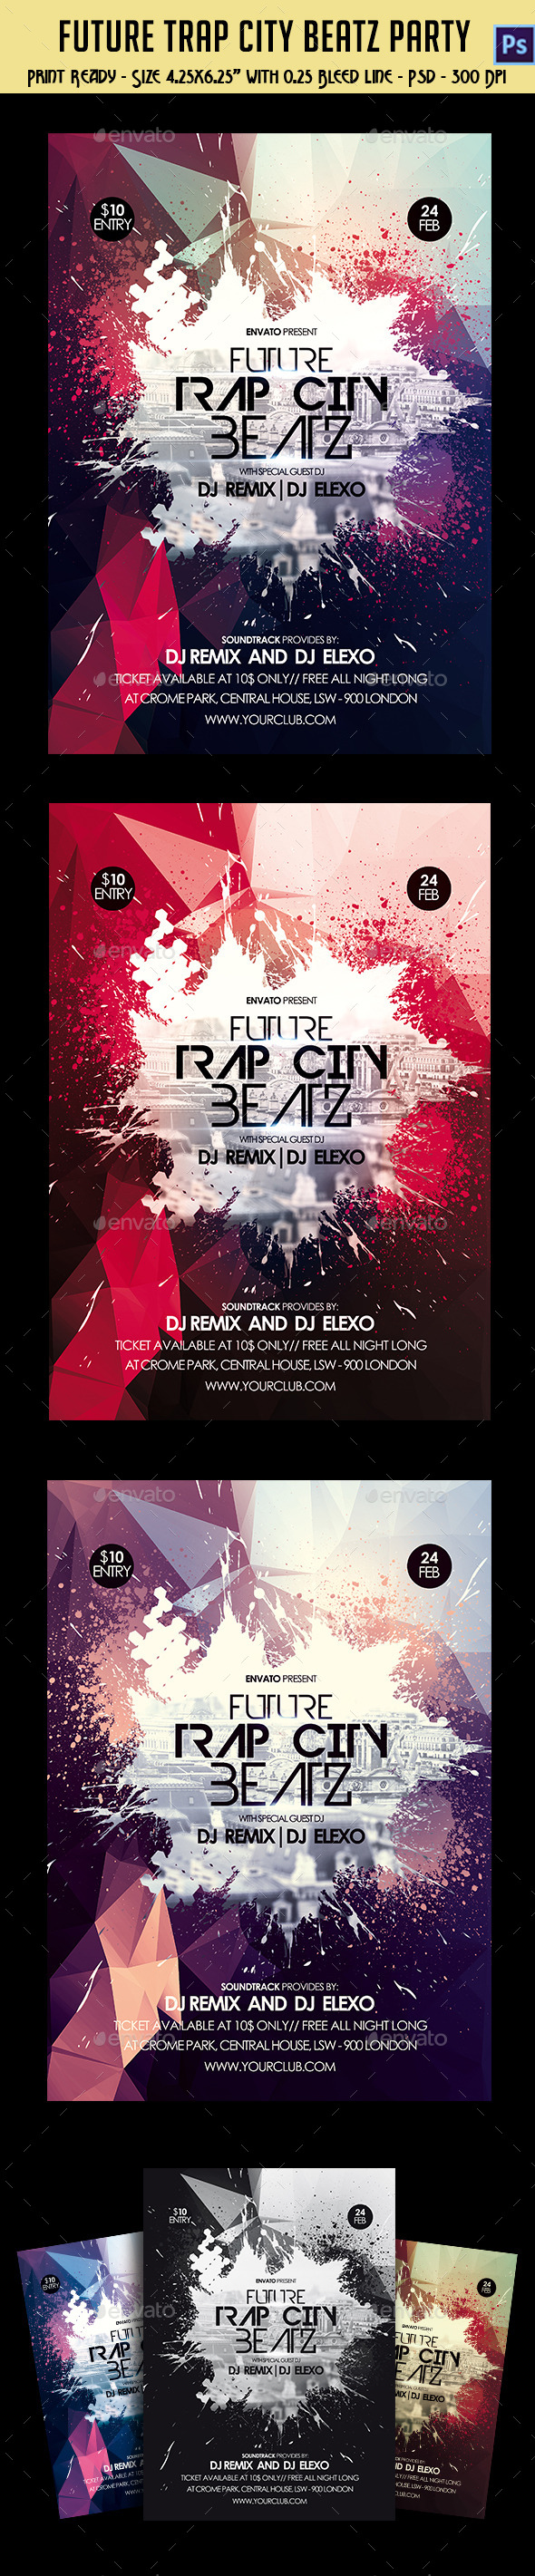 GraphicRiver Future Trap City Beatz Party Flyer 10442715